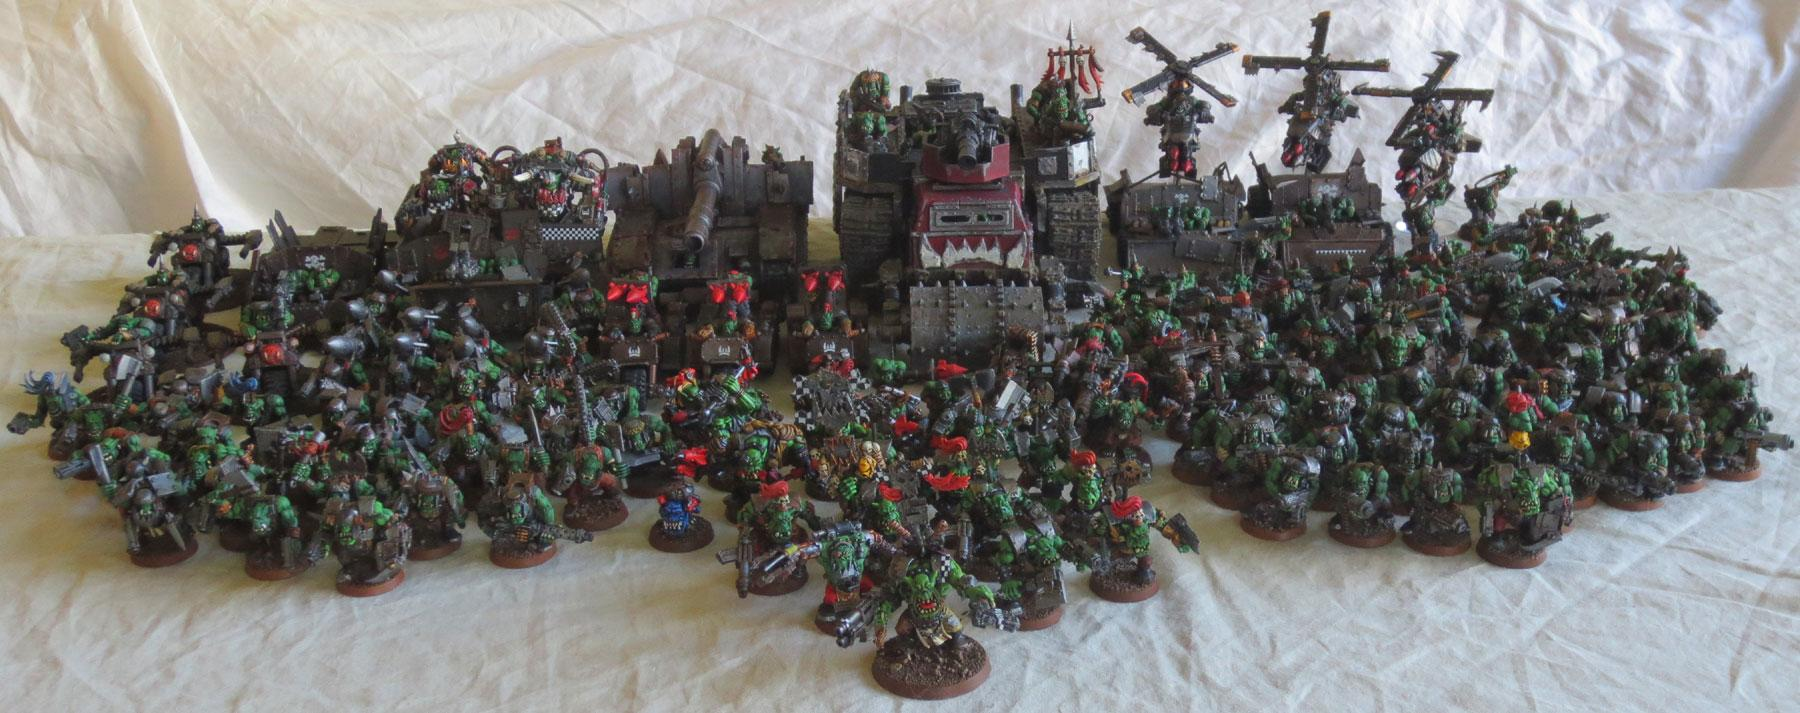 Captain Brown, Captain Brown's Ork Waaagh, Gretchin, Orks, Waaagh